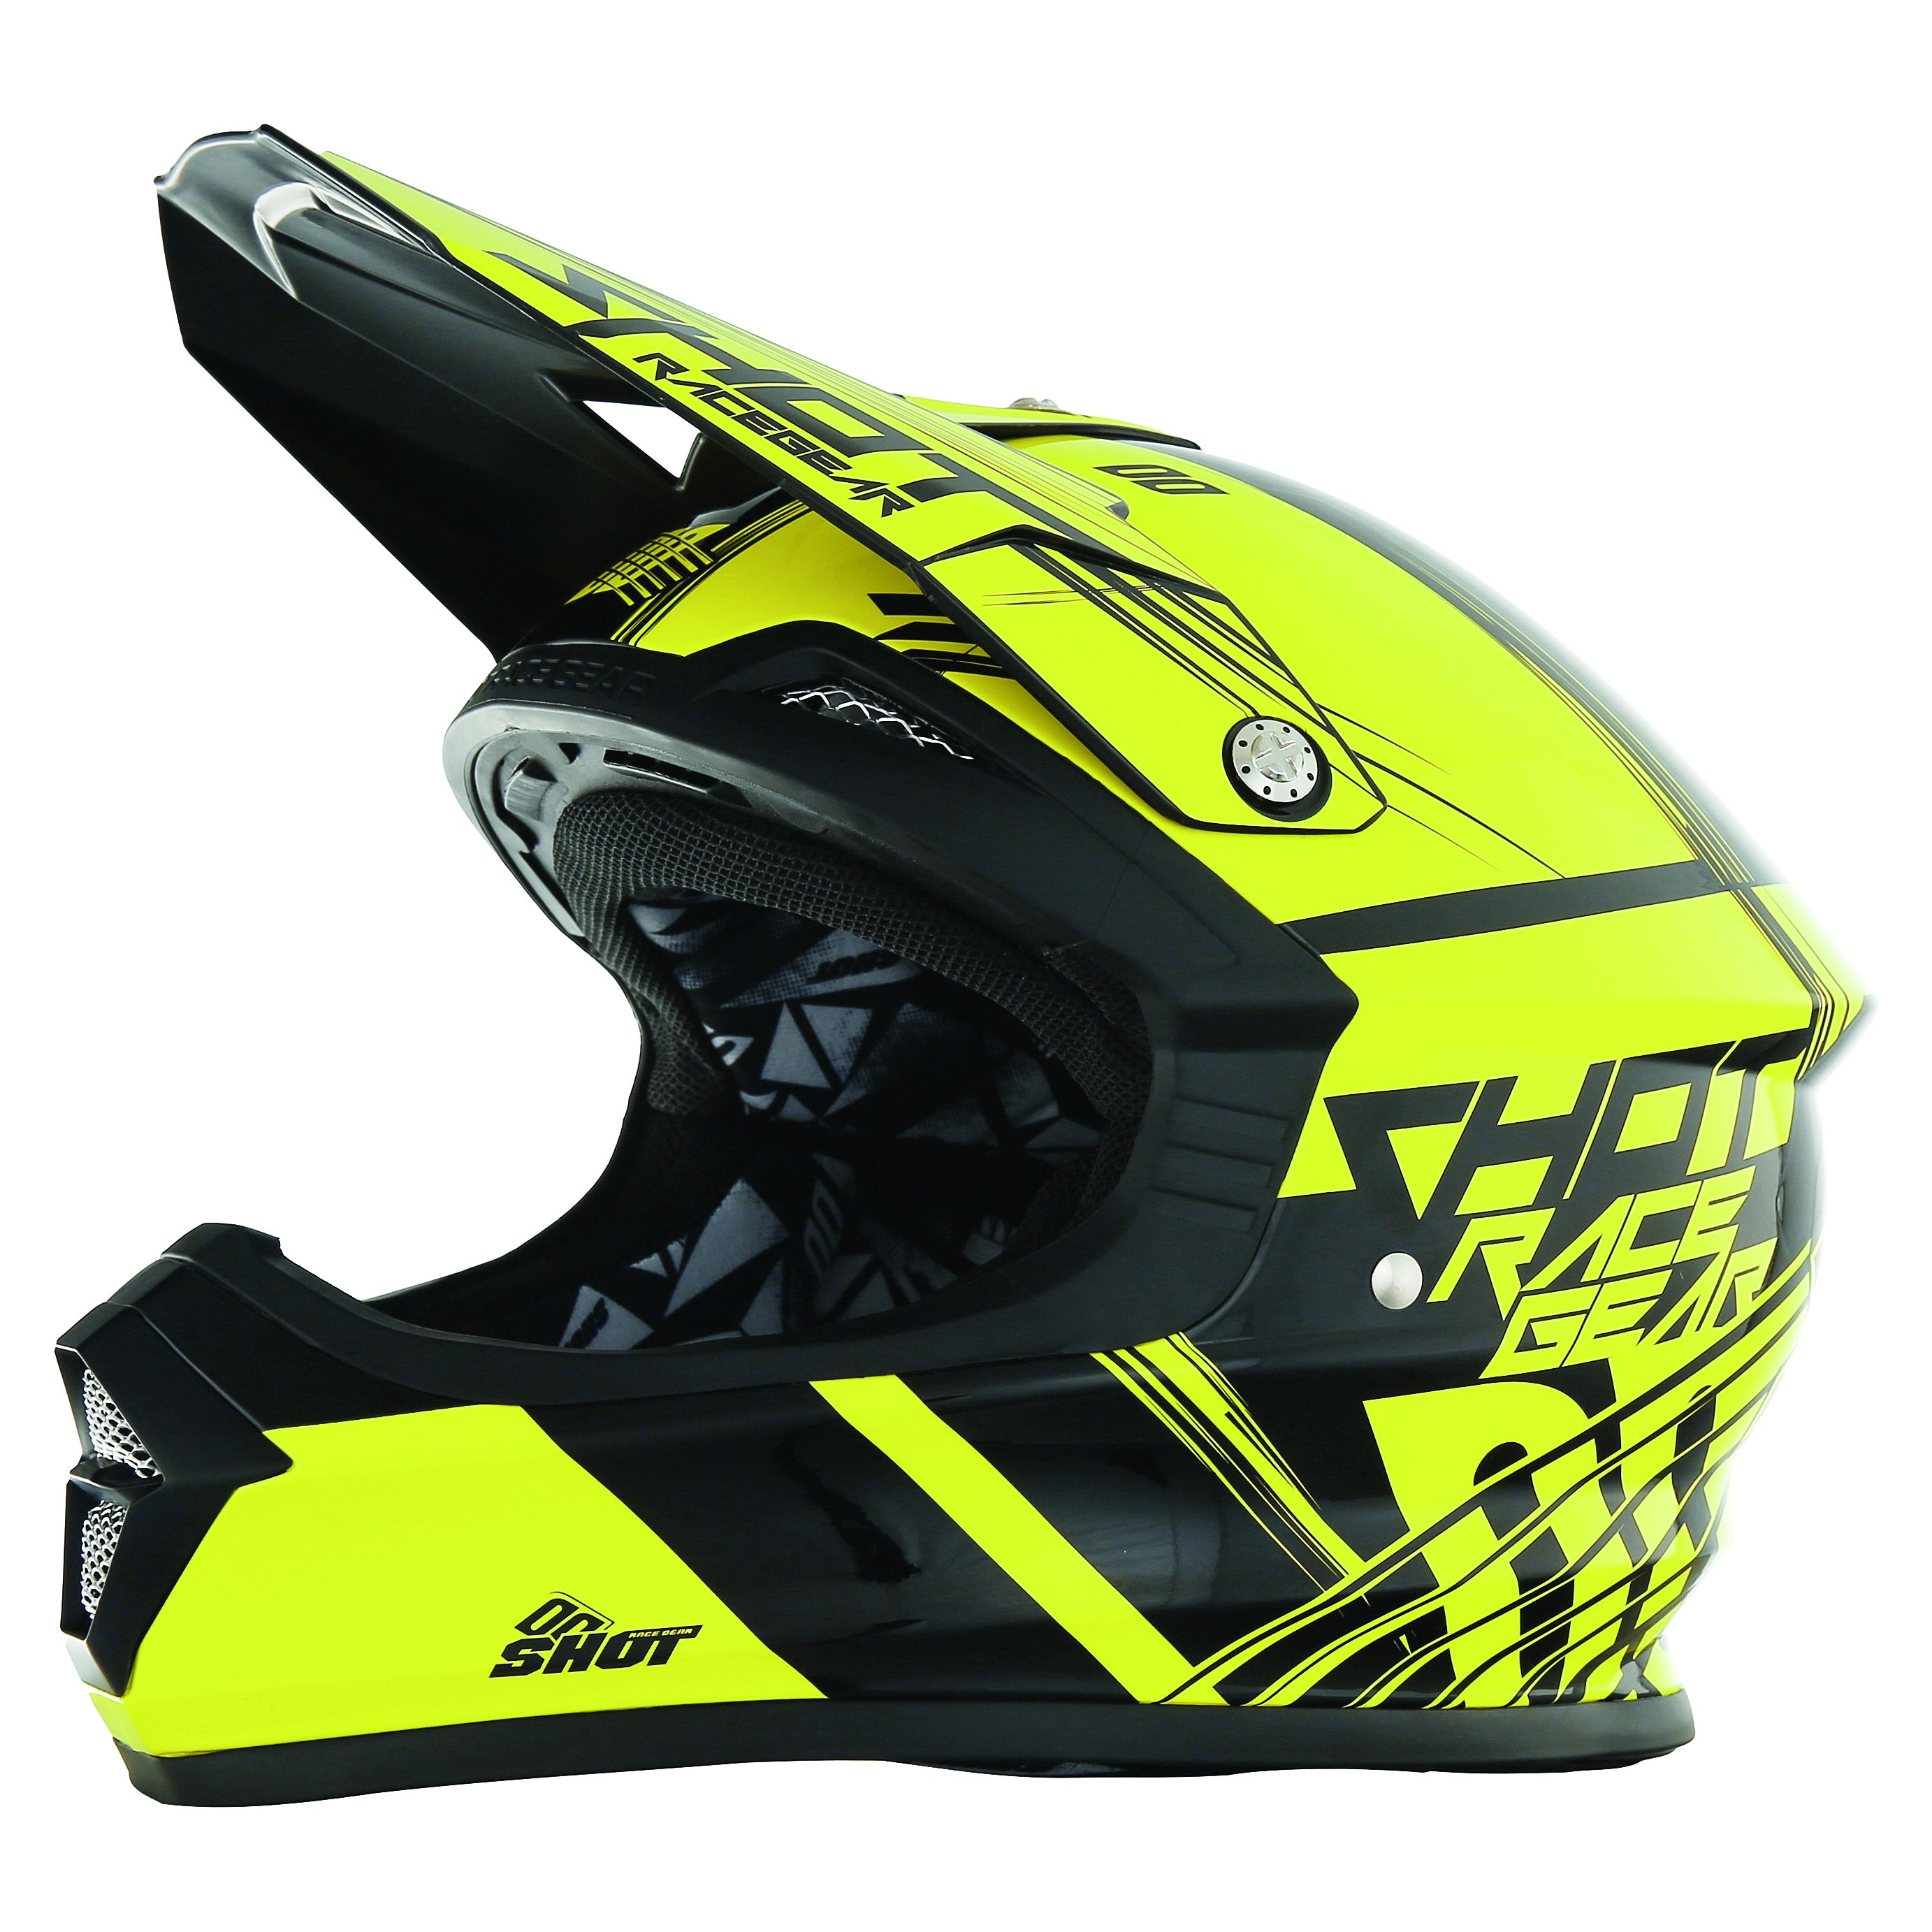 Casque cross Shot destockage FURIOUS CLAW NEON JAUNE  2017